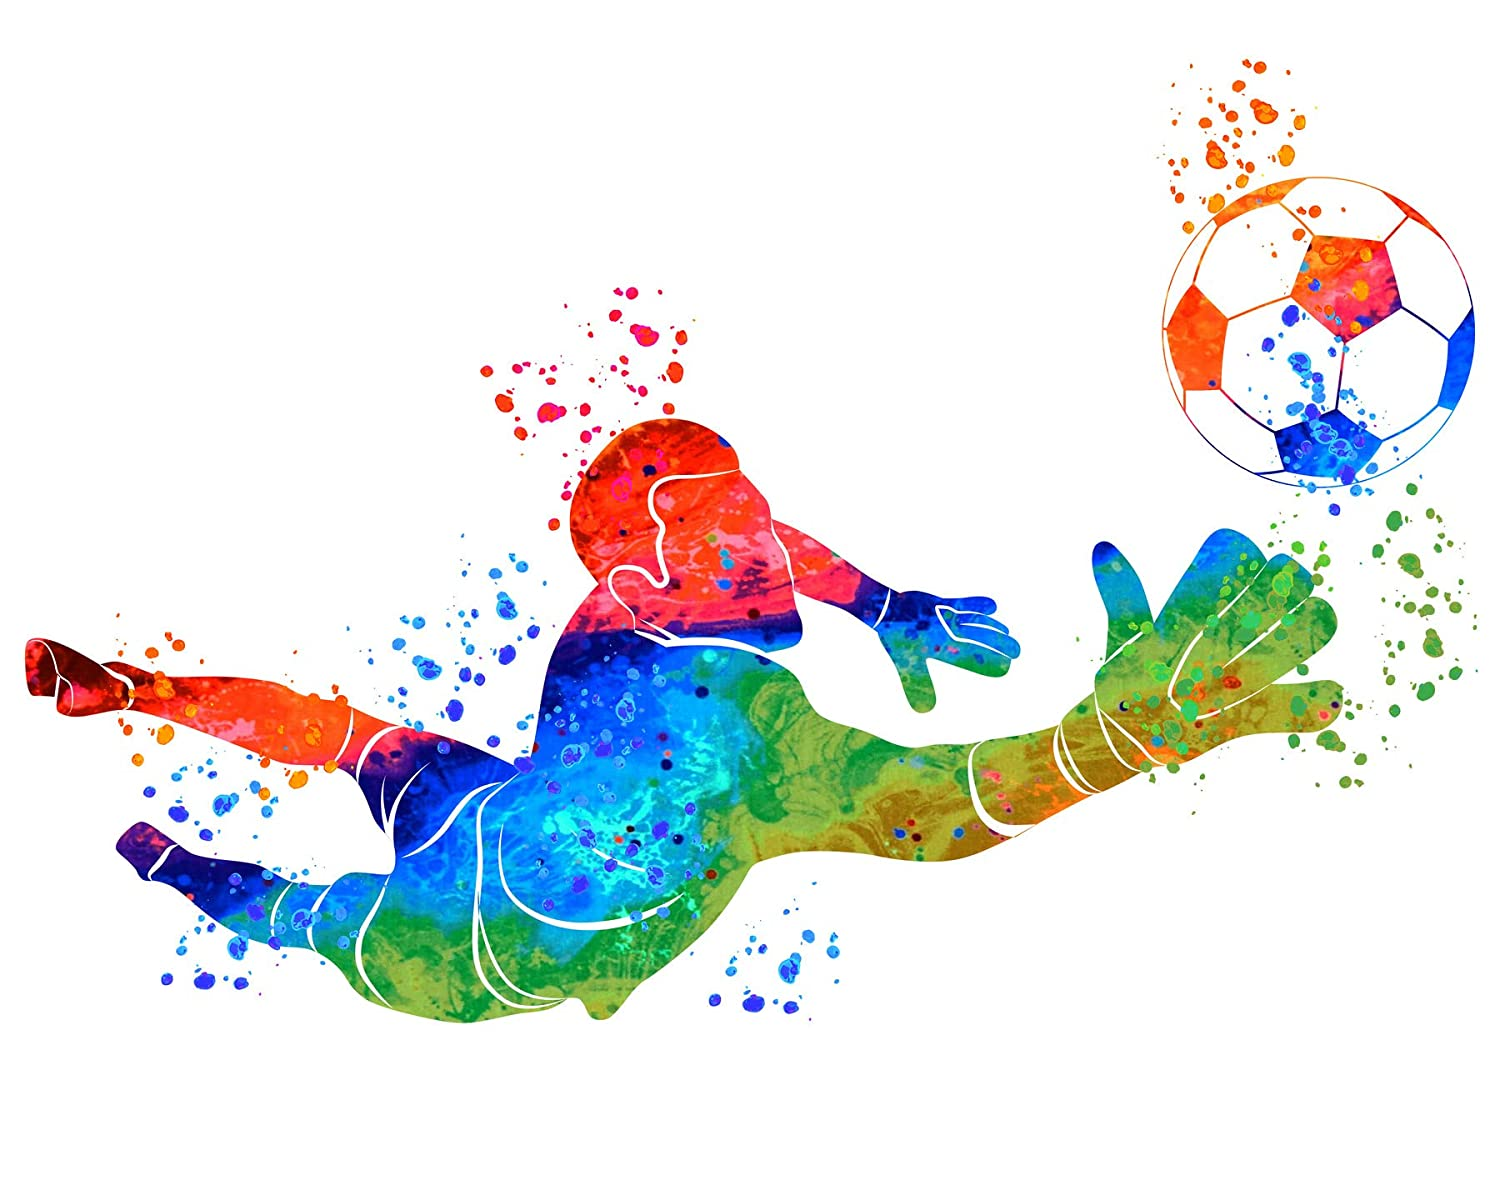 Watercolor Vibrant Soccer Wall Art for Men - Gift for Him - Sports Posters - Workout Football room decor - Abstract decor for boys bedroom…